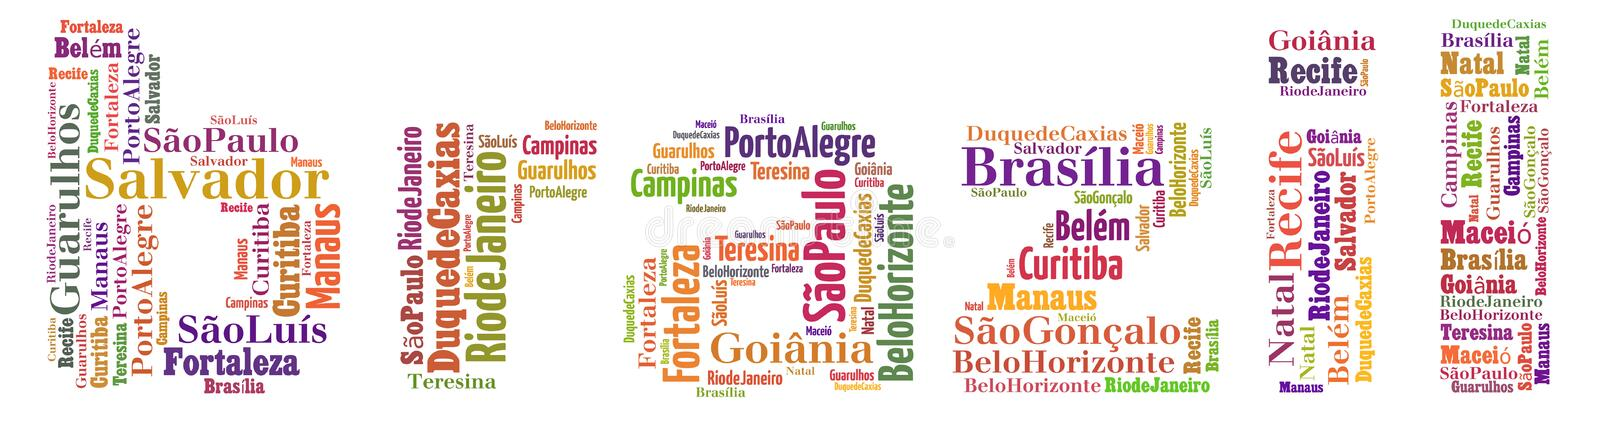 Largest cities or towns of Brazil info-text graphics. And arrangement concept (word cloud) on white background royalty free illustration